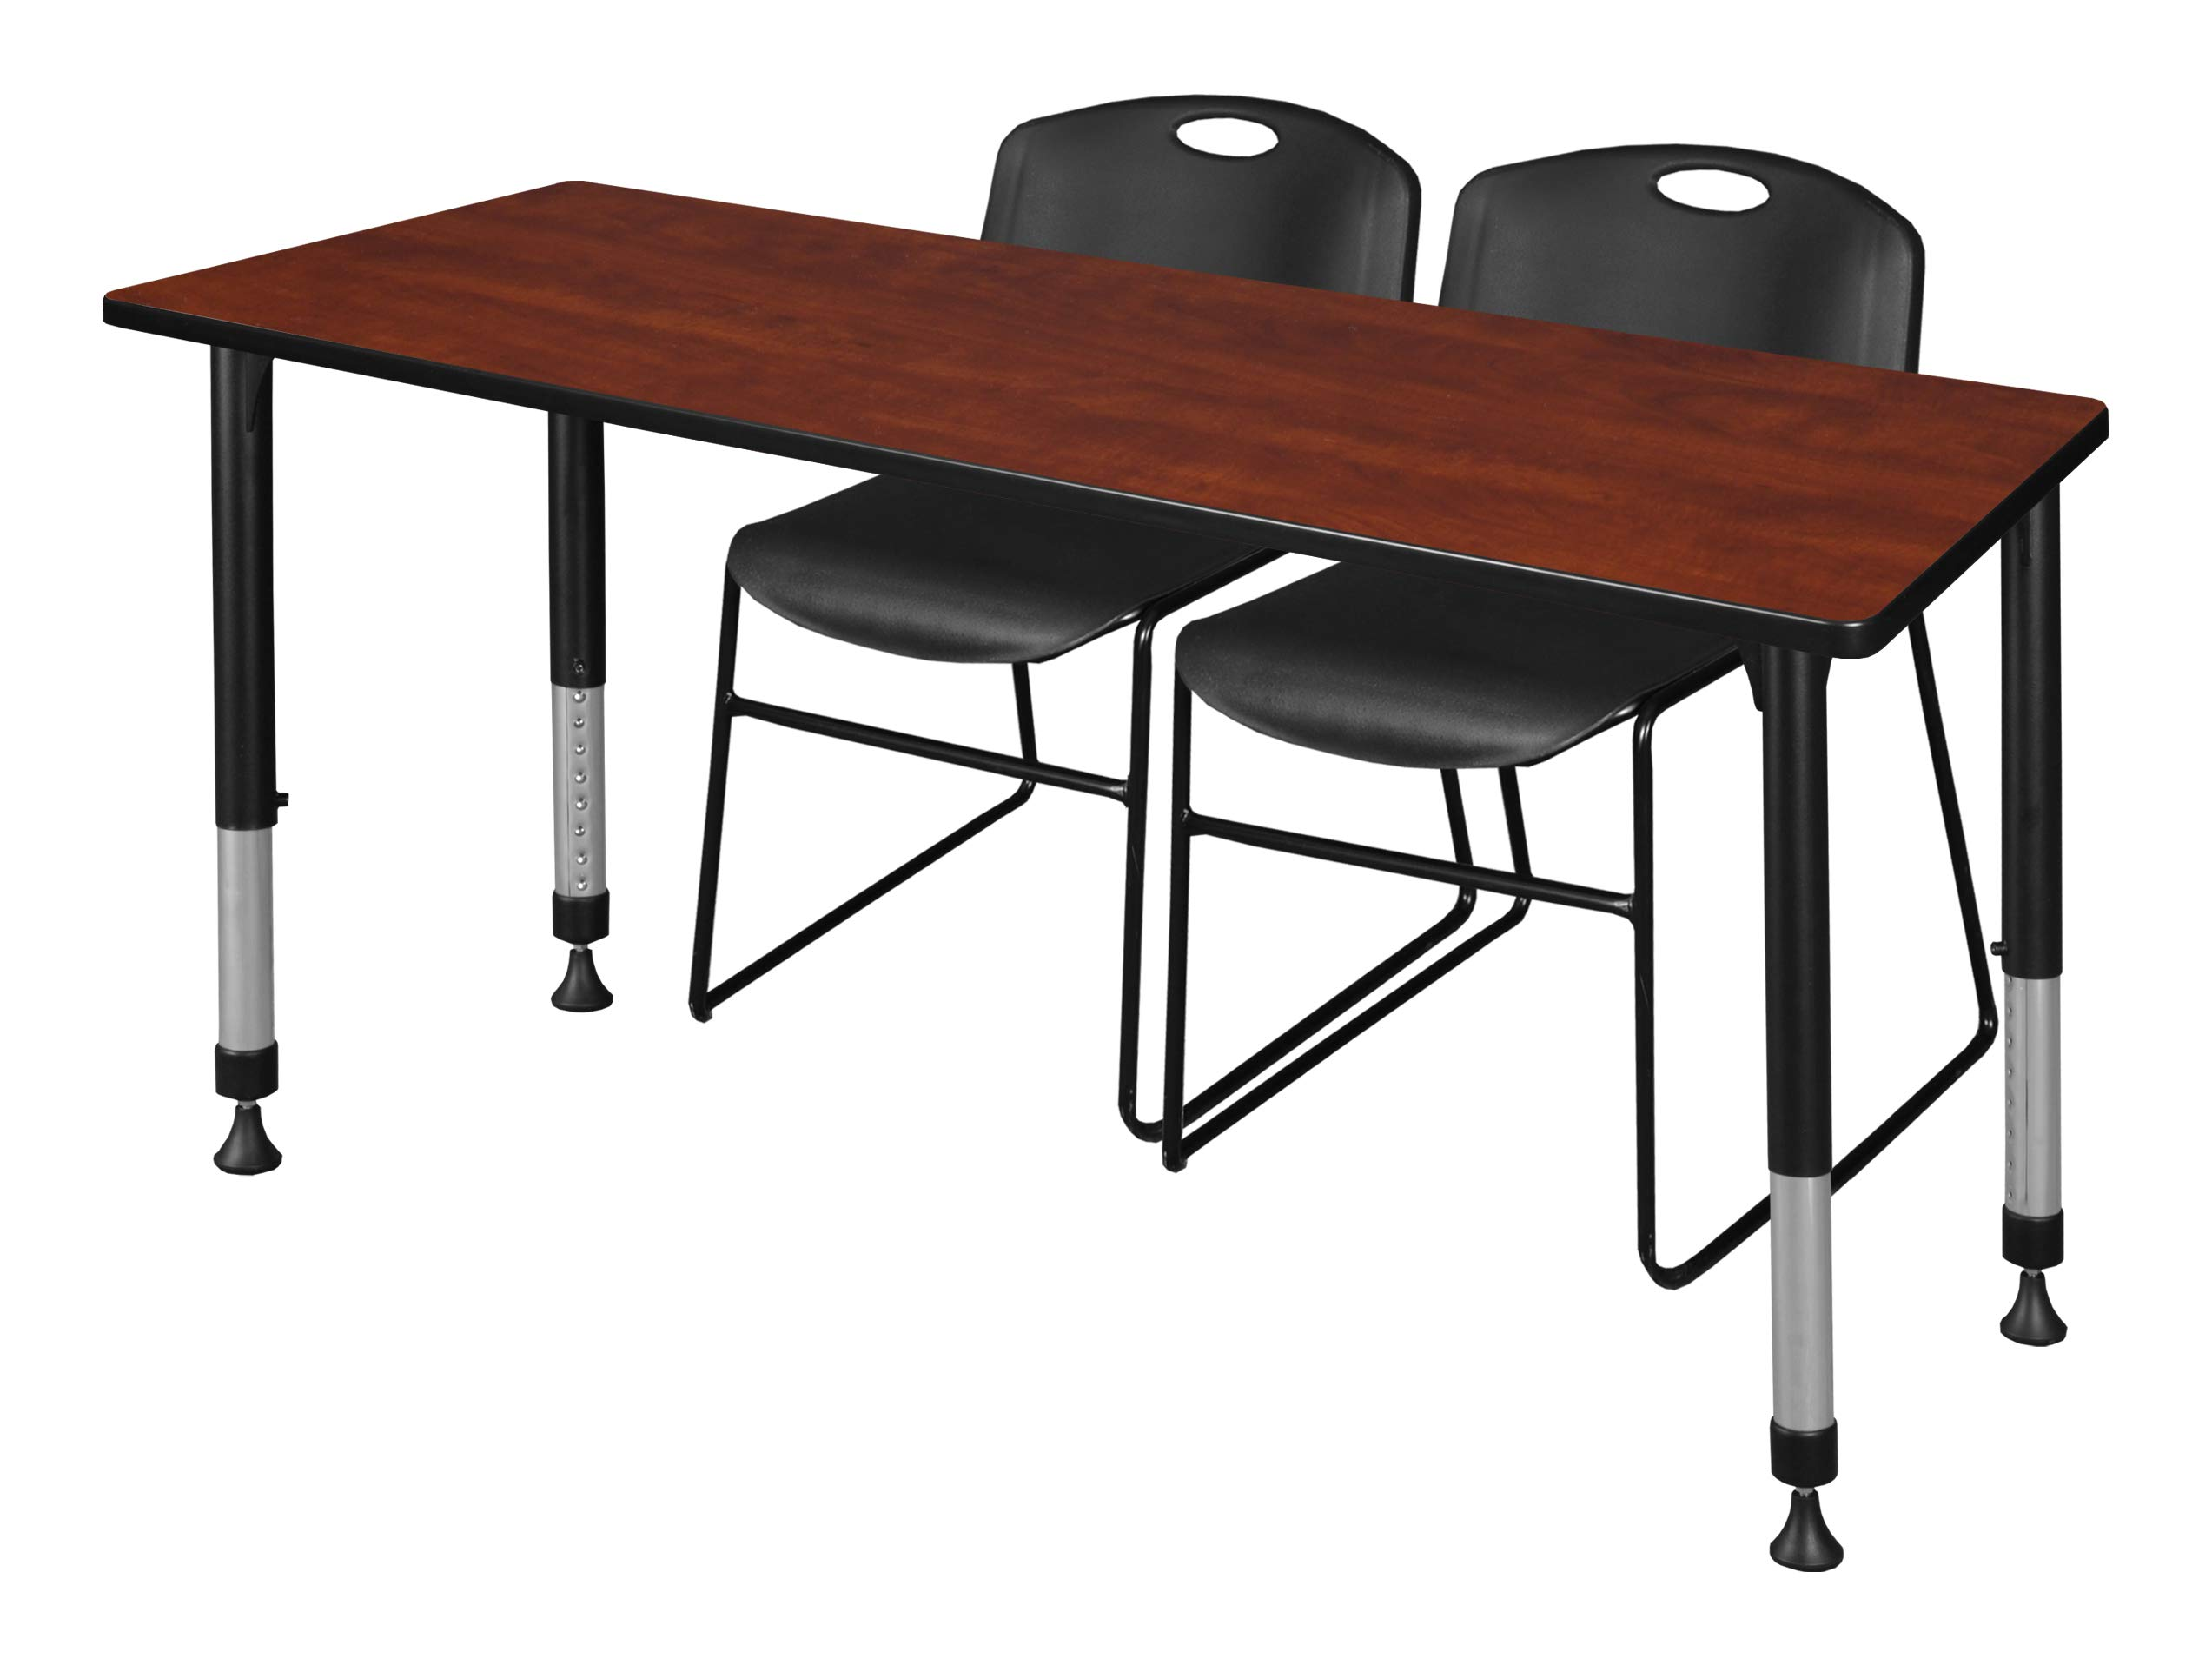 Regency MT6624CHAPBK44BK Kee Height Adjustable Classroom Table Set with Two Zeng Chairs 66'' x 24'' Cherry/Black